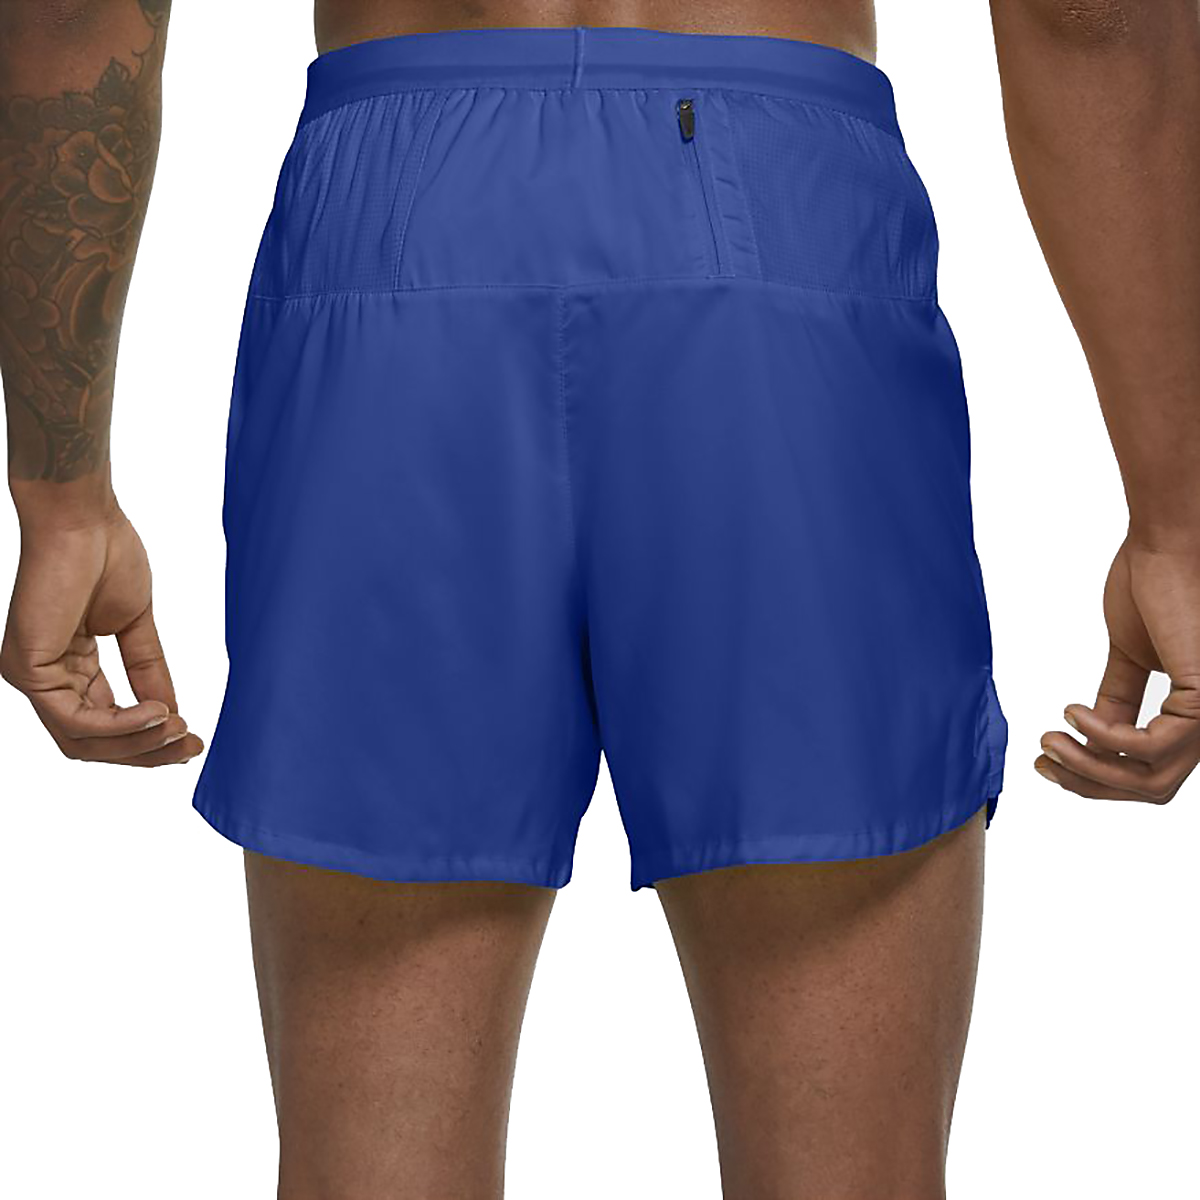 """Men's Nike Flex Stride 5"""" Brief Running Shorts - Color: Game Royal/Reflective Silver - Size: S, Game Royal/Reflective Silver, large, image 2"""